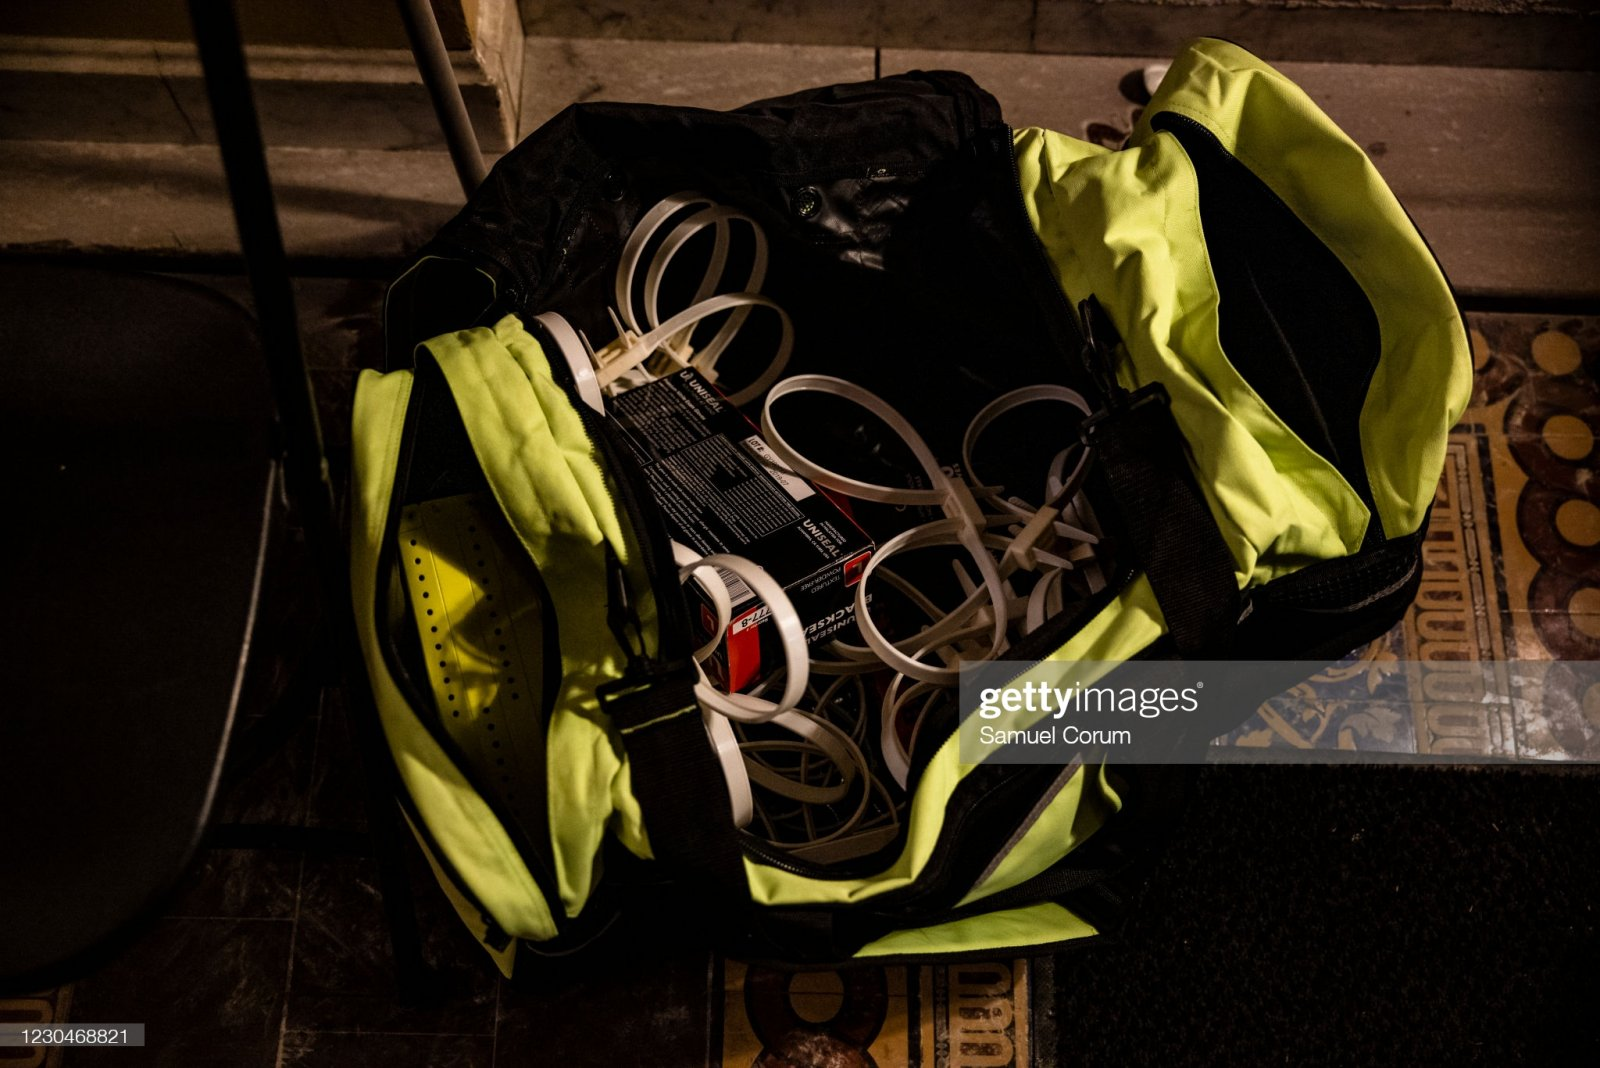 gettyimages-1230468821-2048x2048.jpg